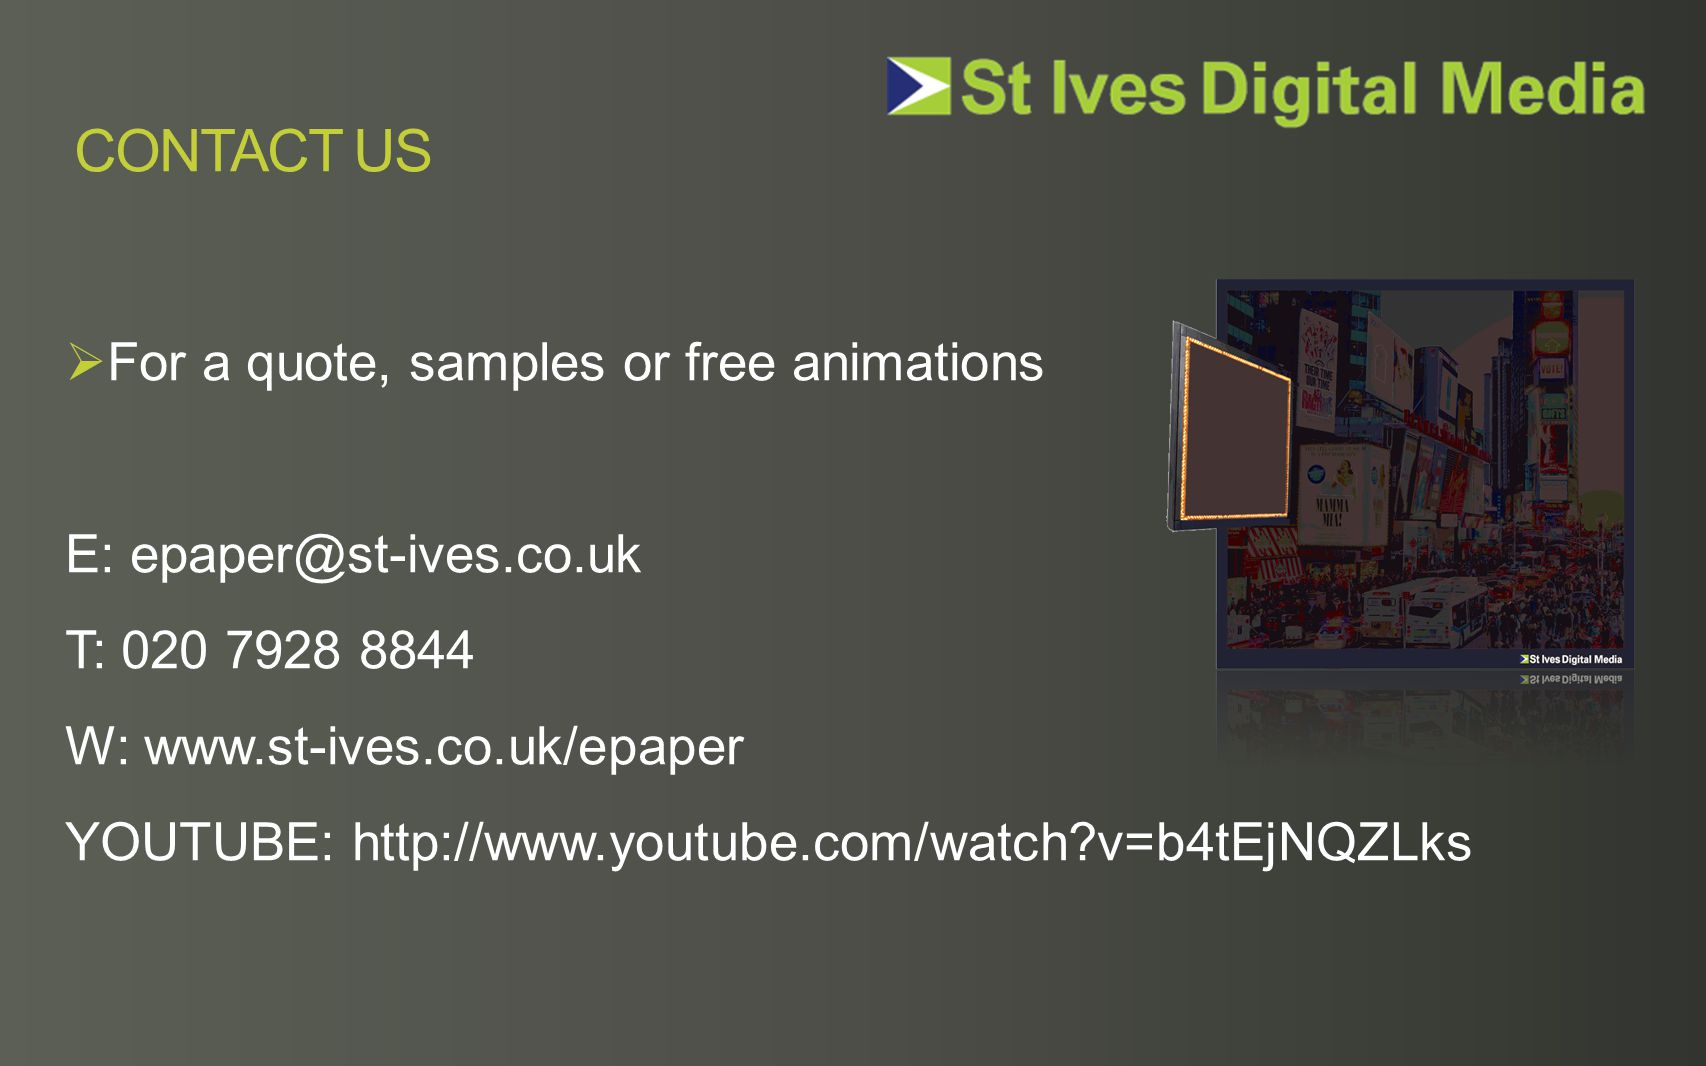  For a quote, samples or free animations E: epaper@st-ives.co.uk T: 020 7928 8844 W: www.st-ives.co.uk/epaper YOUTUBE: http://www.youtube.com/watch?v=b4tEjNQZLks CONTACT US